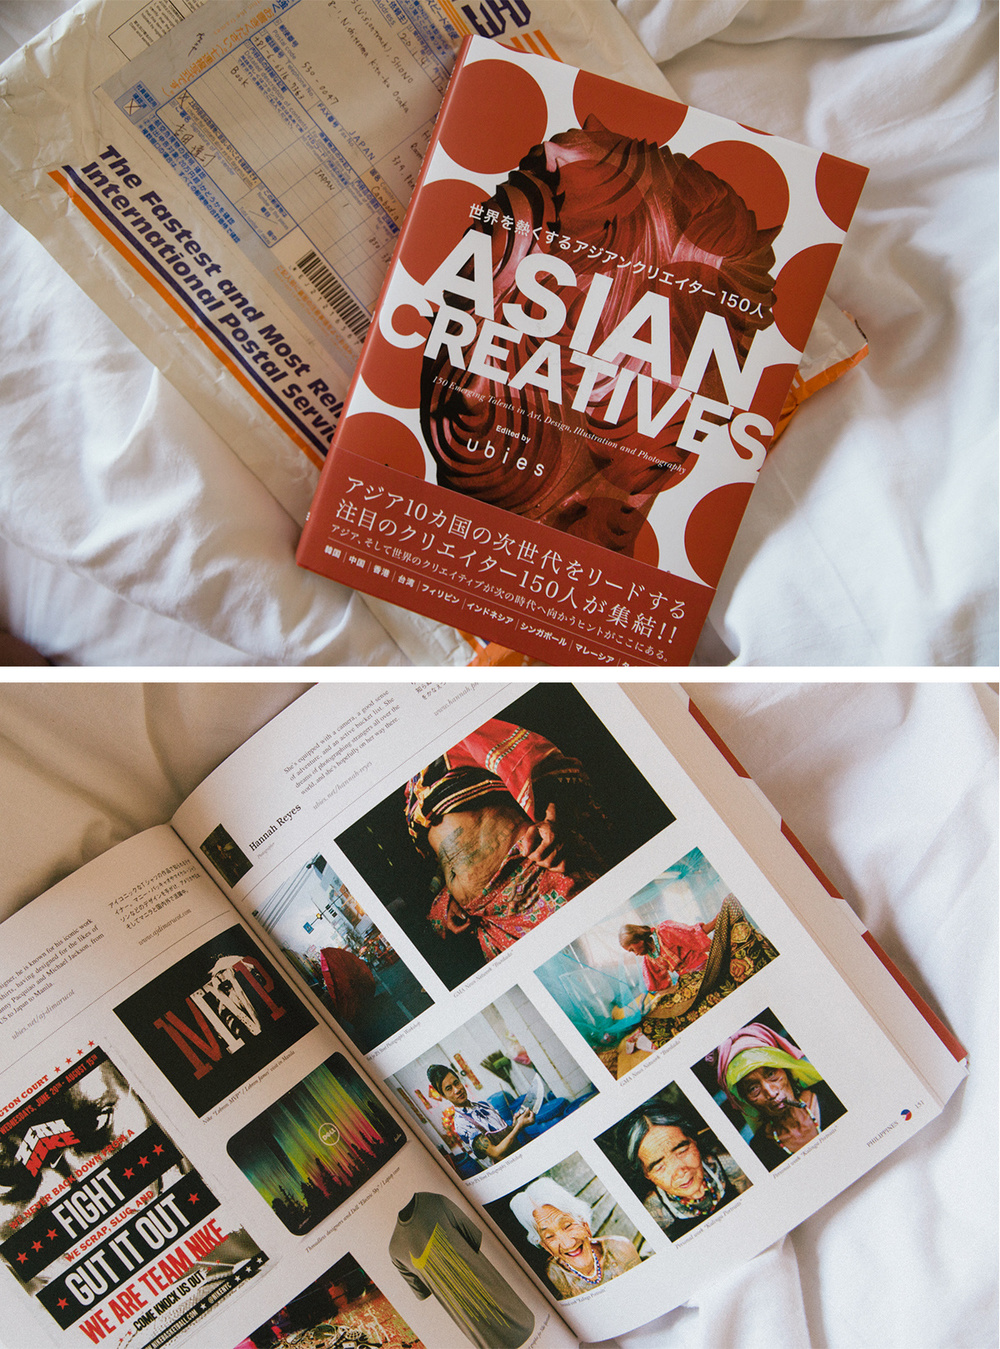 Ubies Japan Asian Creatives Book